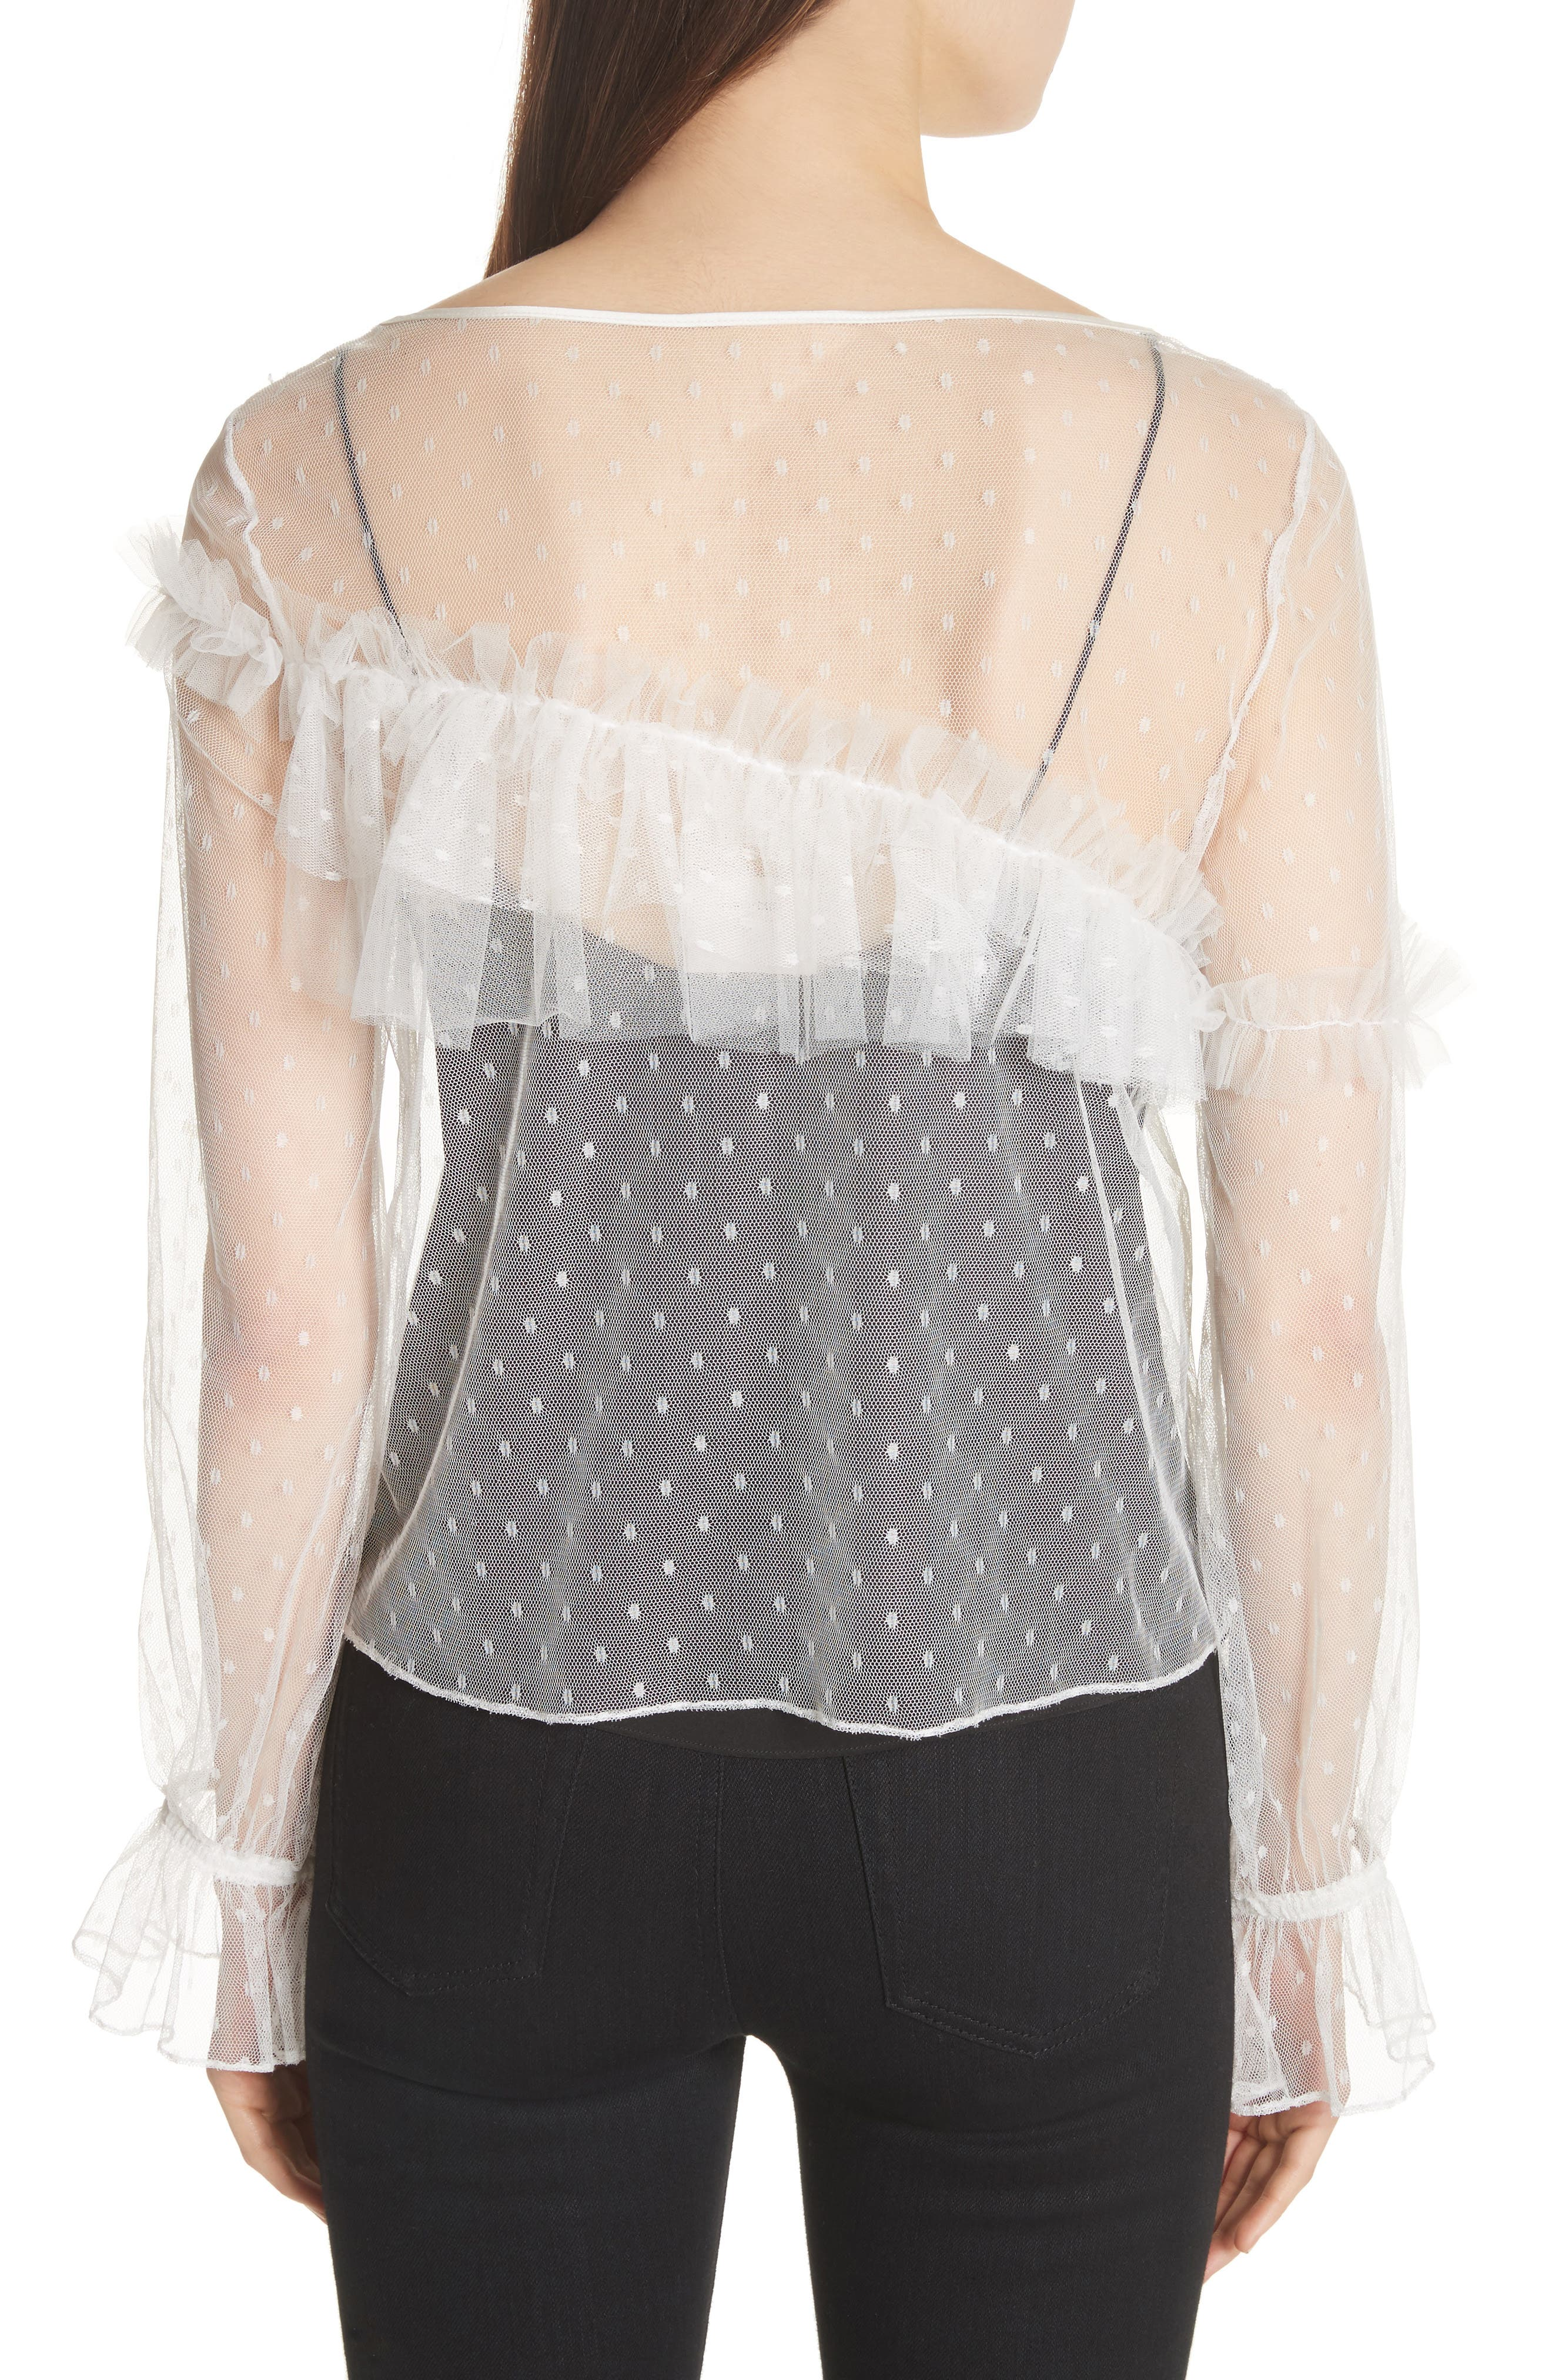 Indio Layered Swiss Dot Top,                             Alternate thumbnail 2, color,                             Ivory